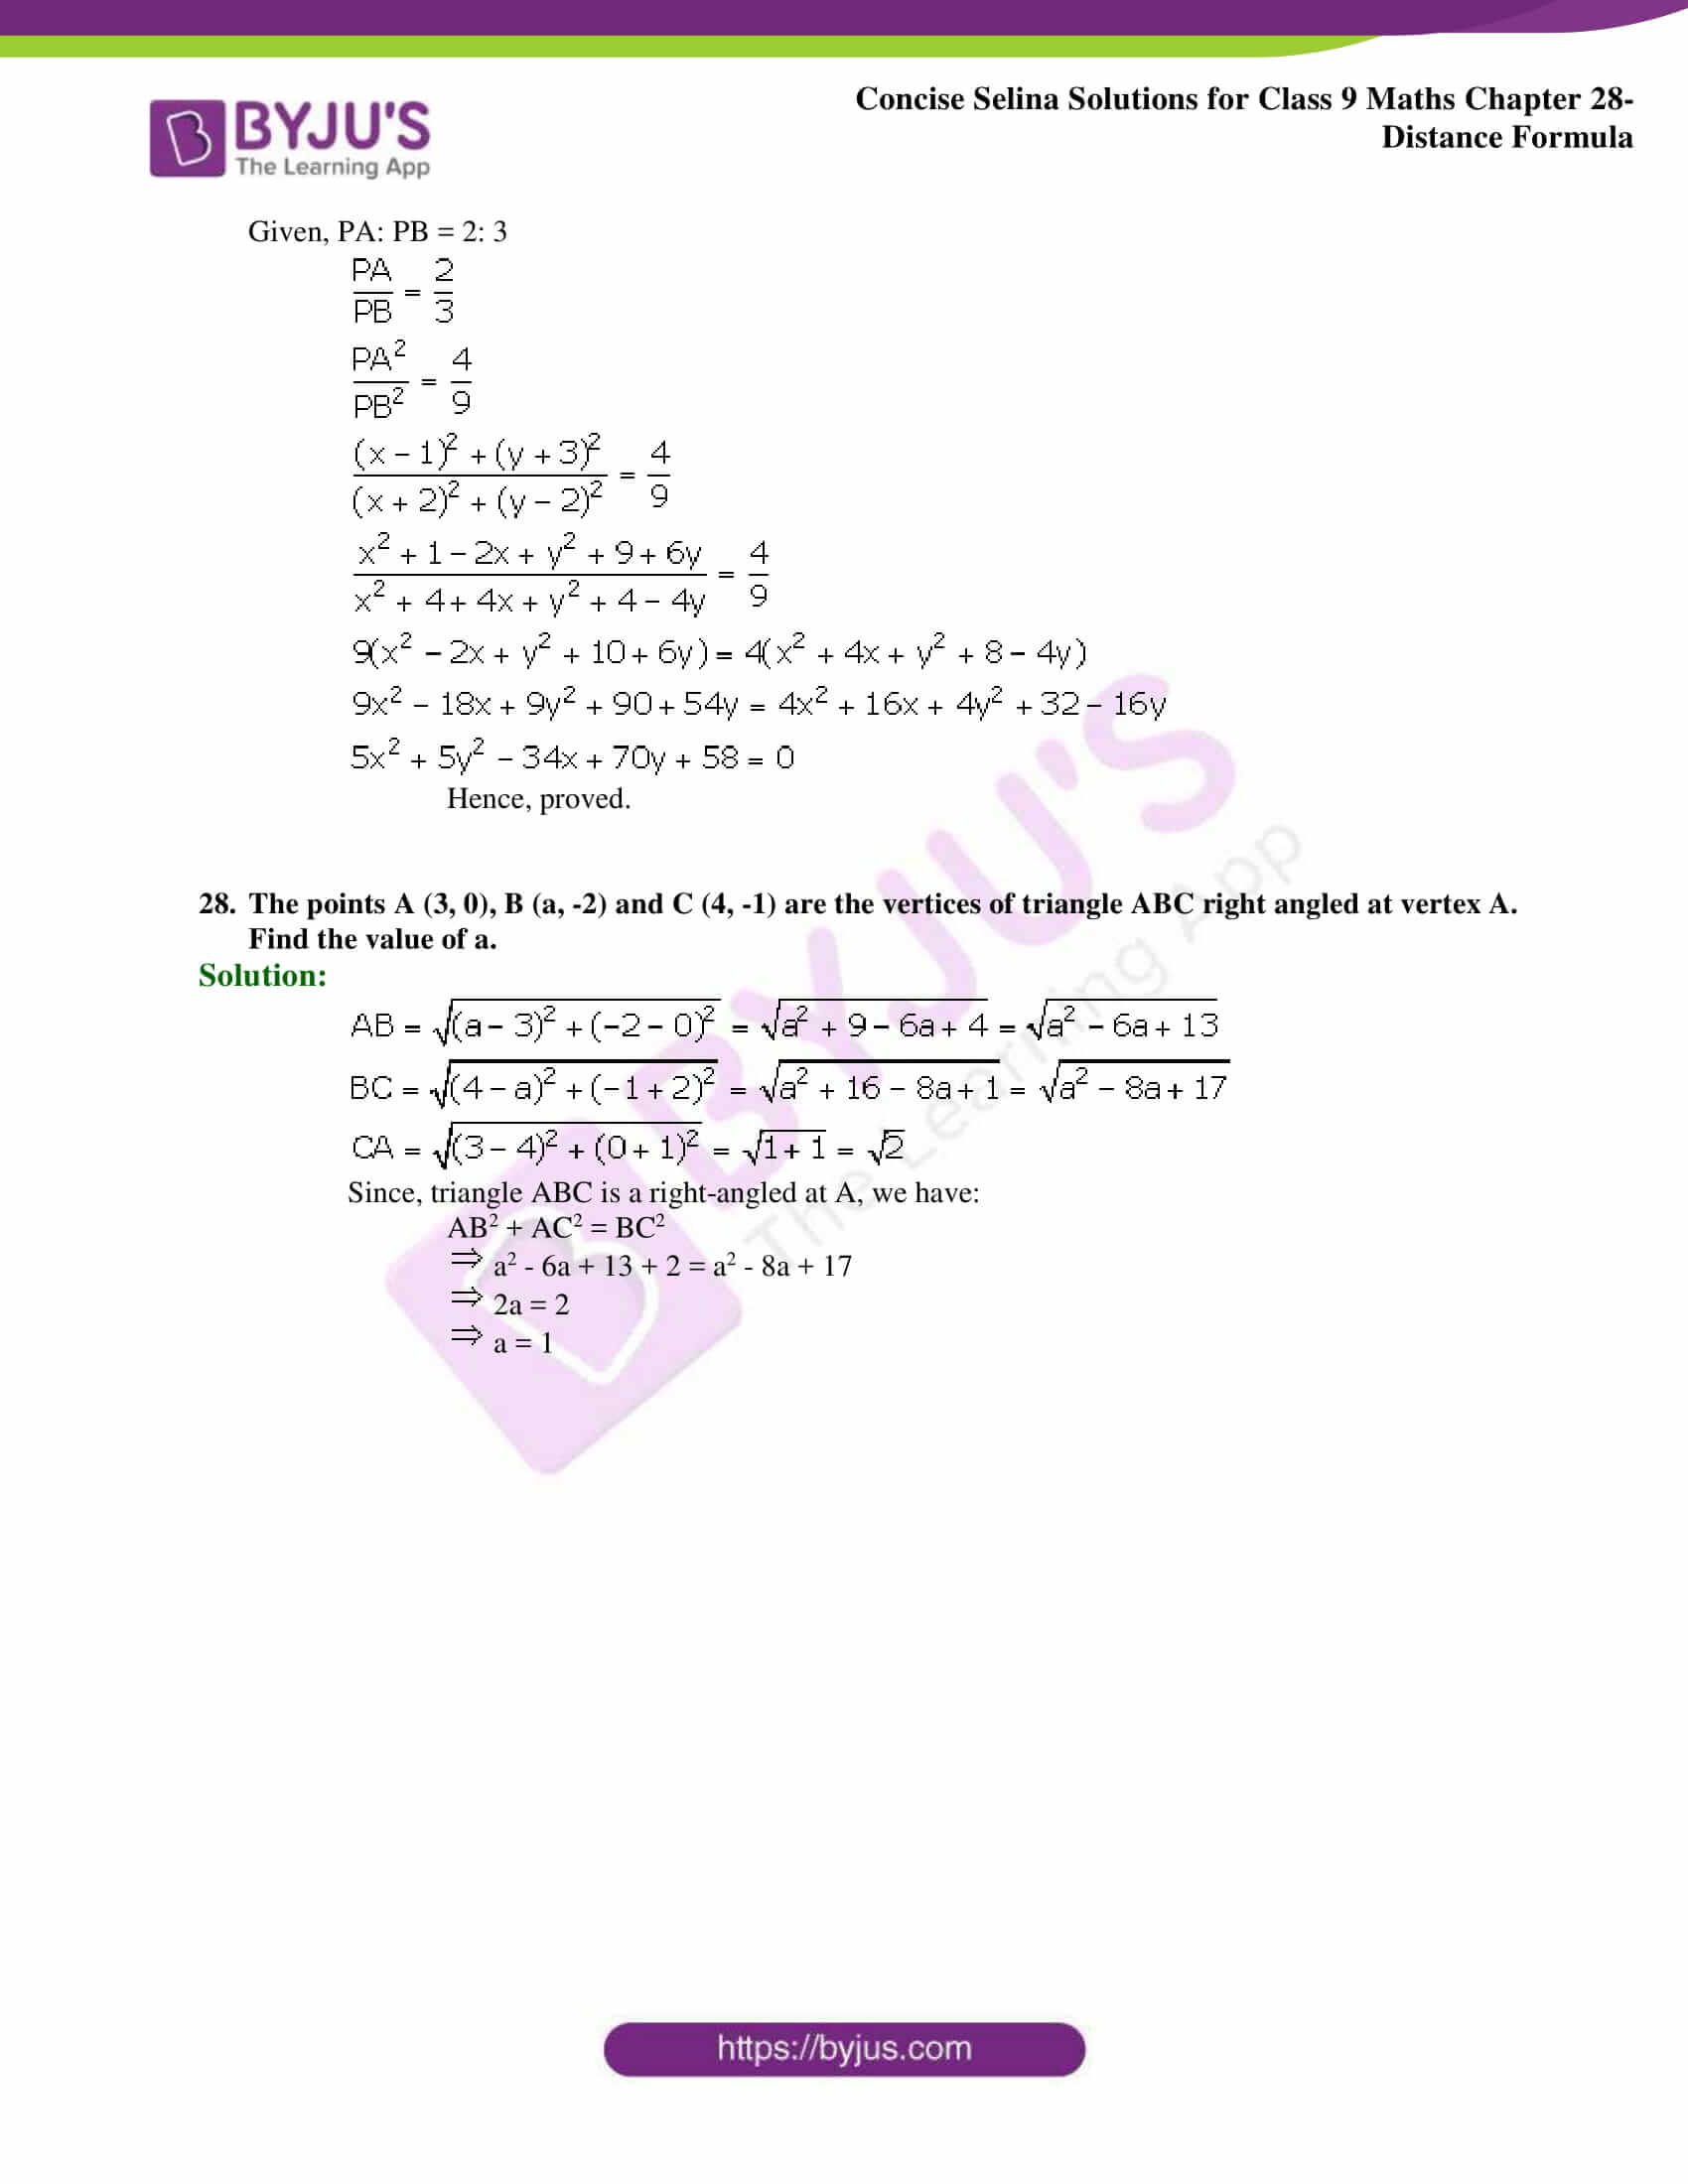 Concise Selina Solutions Class 9 Maths Chapter 28 Distance Formula part 12